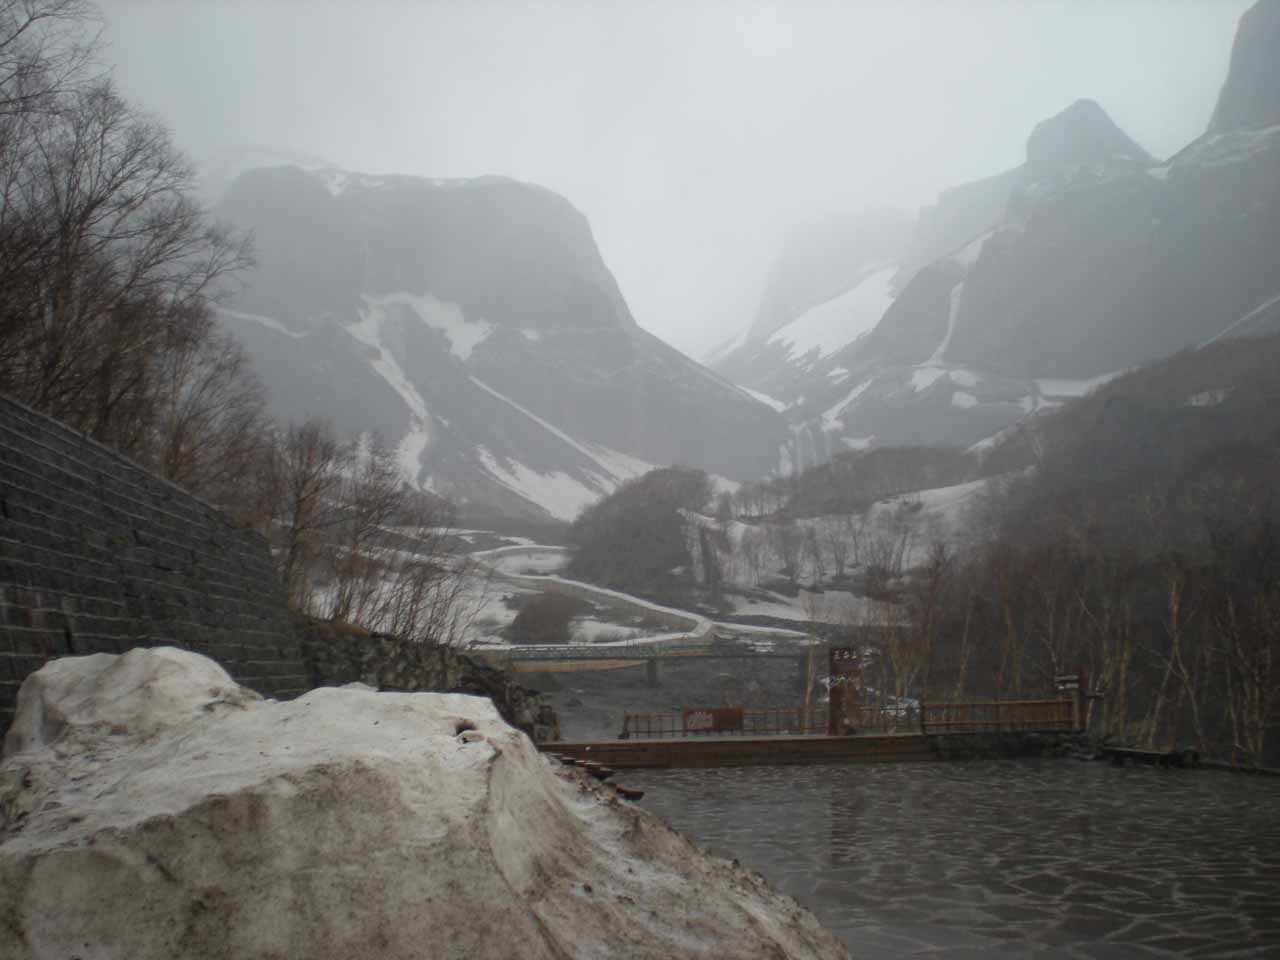 While we were waiting out the storm, we looked out the window and got this view looking in the direction of the Changbai Waterfall